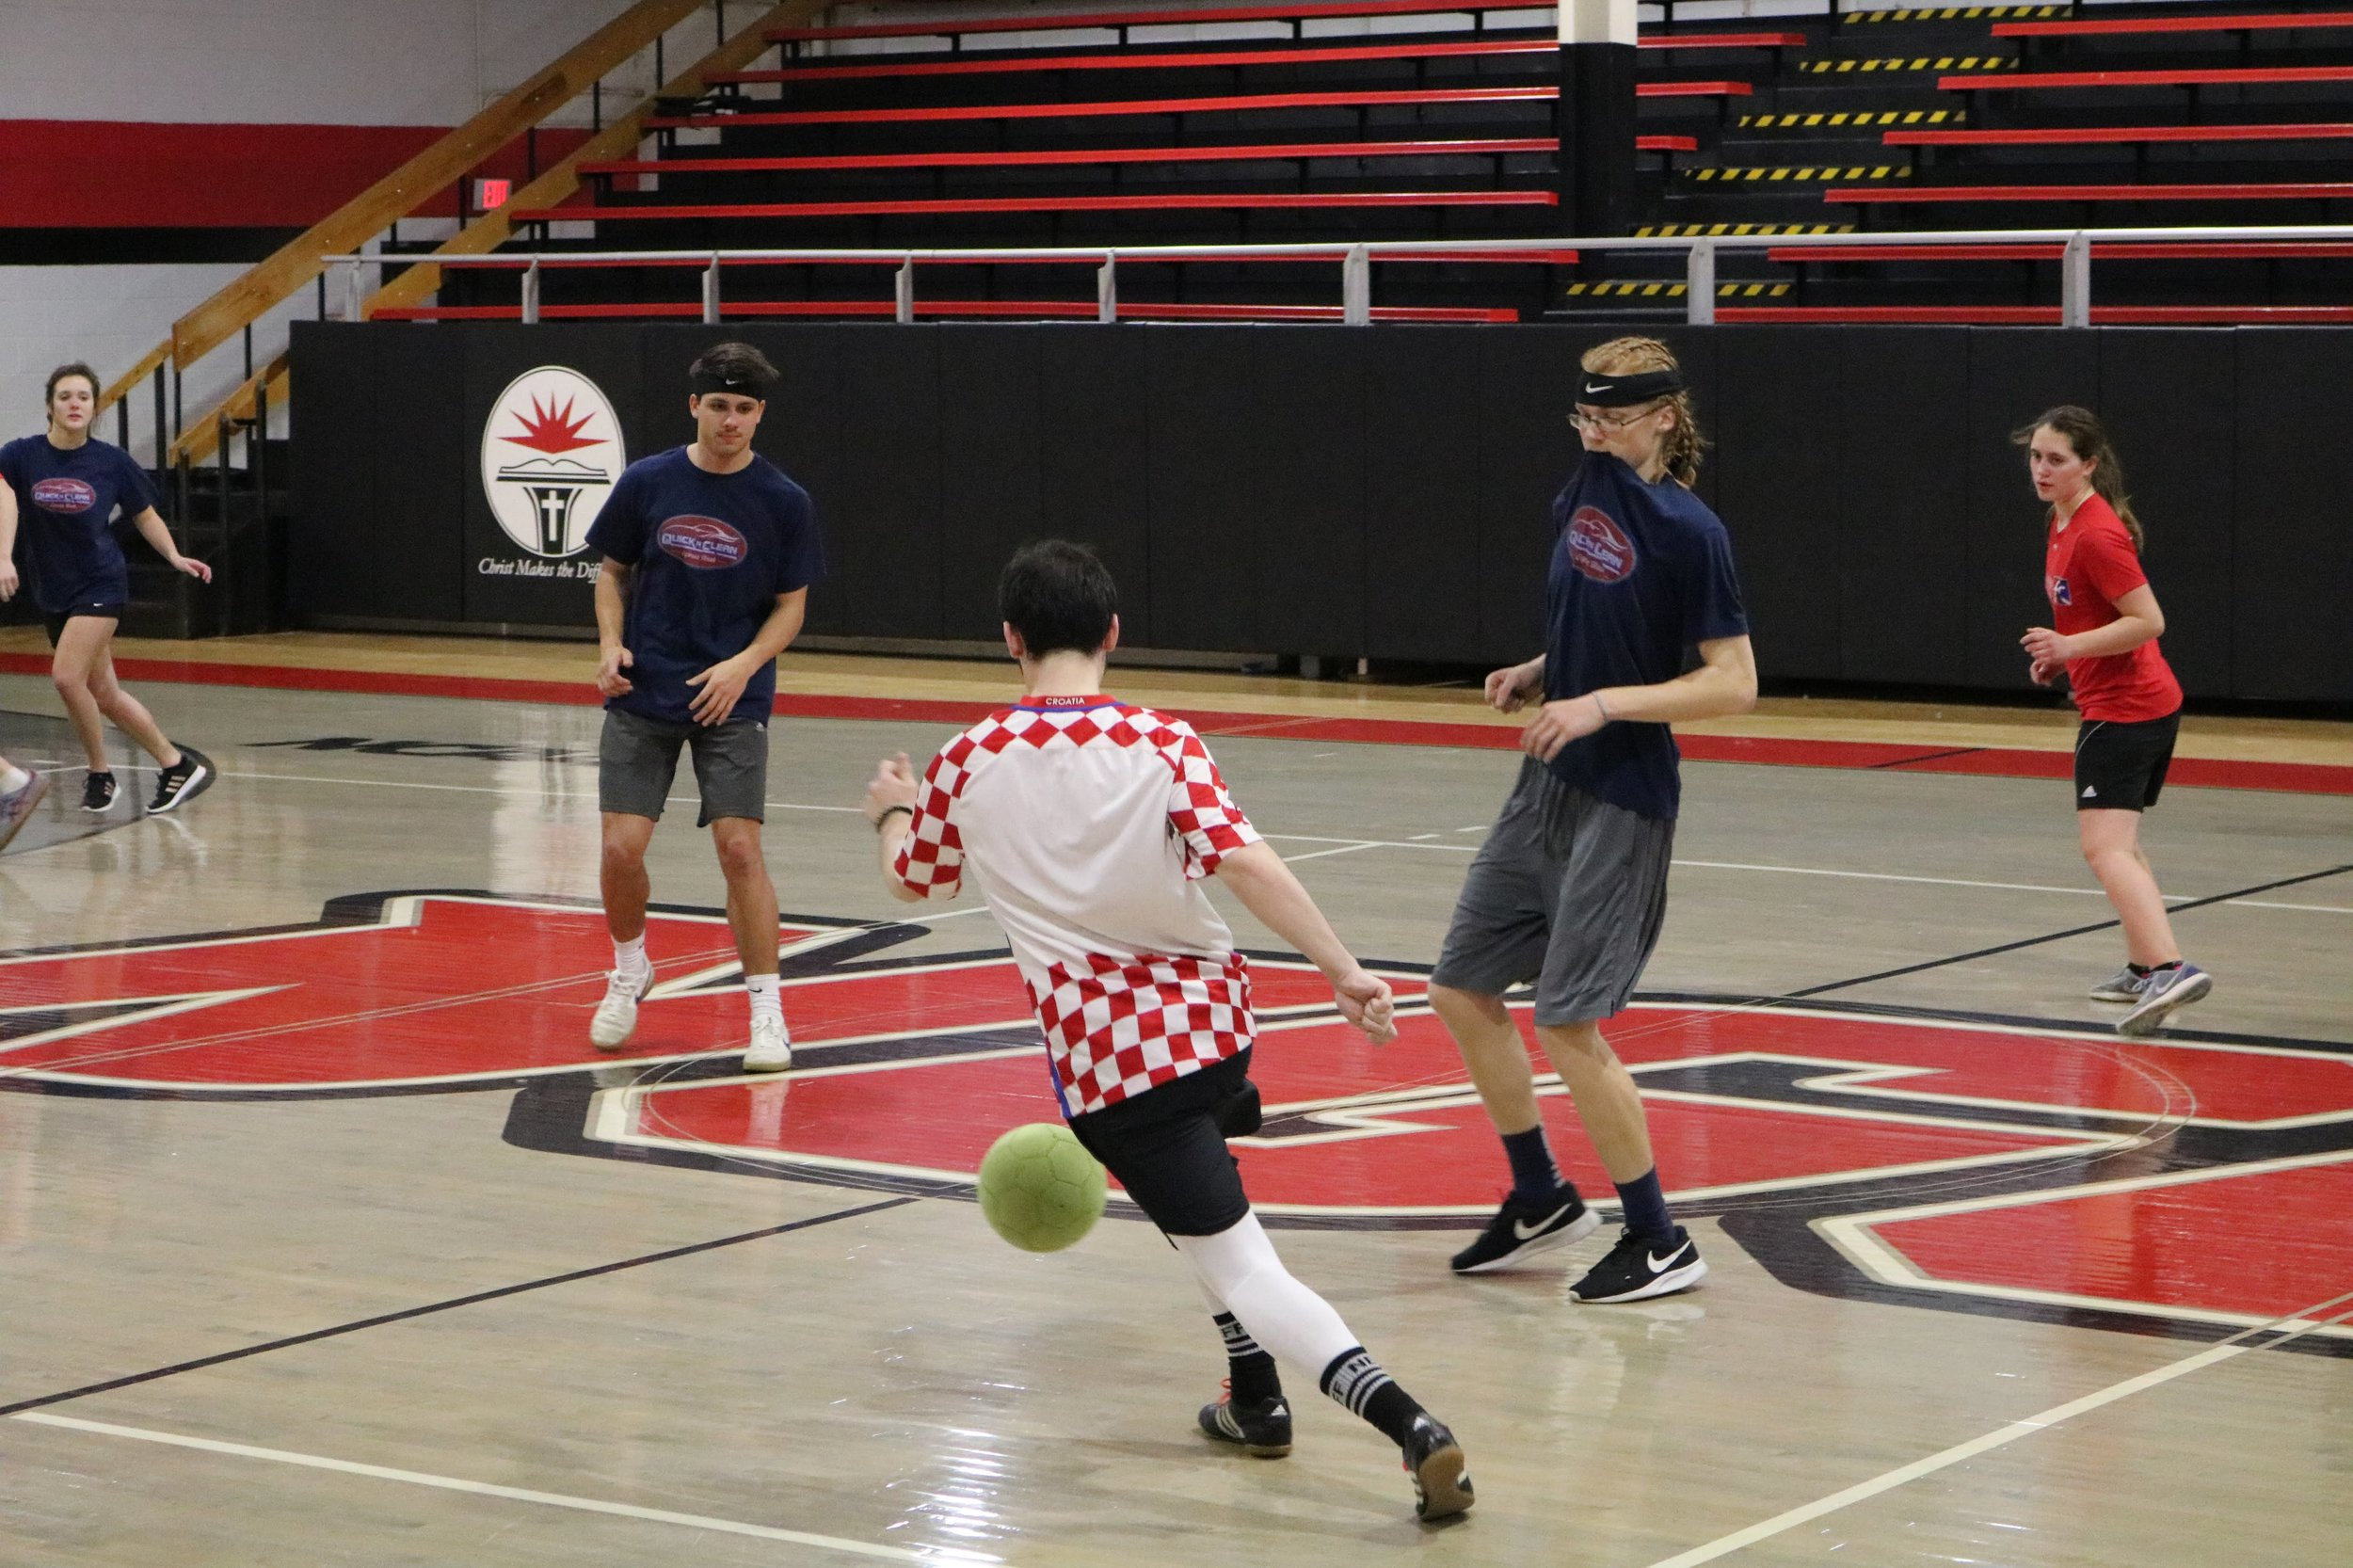 Green kicks the ball down the court as Freshman Camden Kendrick and Forrester look on to see if they can steal the ball away.